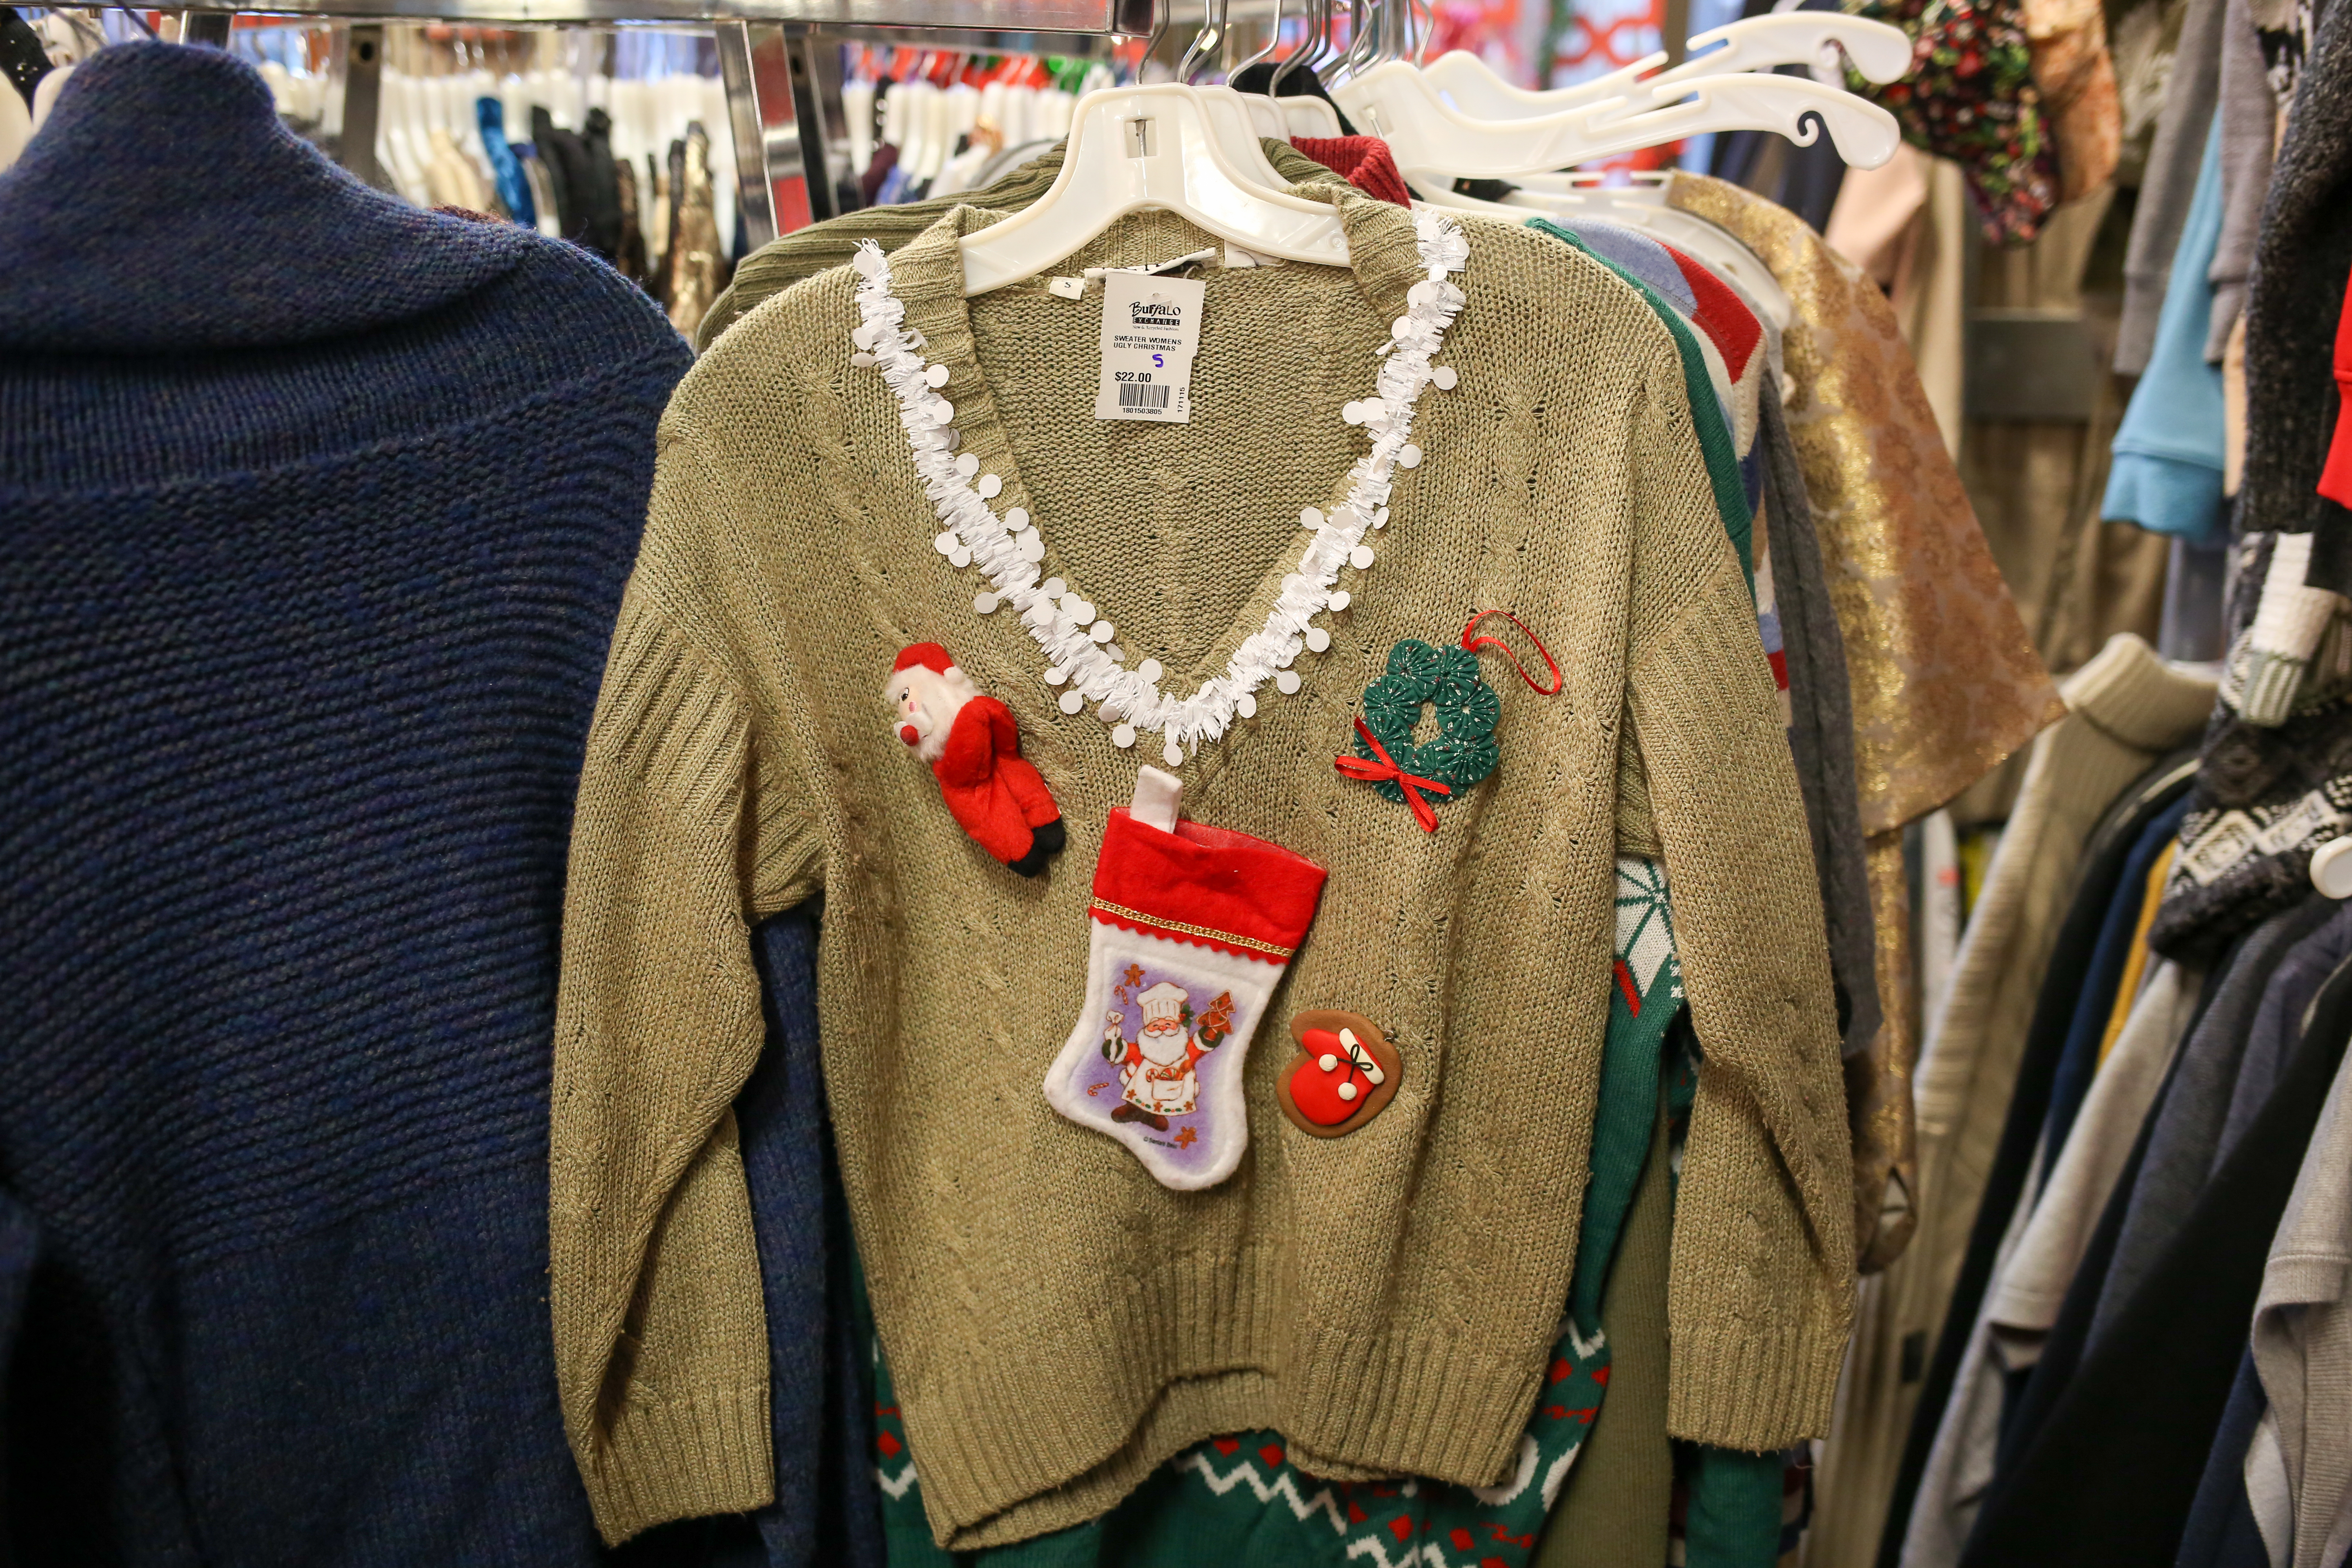 Buffalo Exchange,{ }1318 14th St NW - $22 (Amanda Andrade-Rhoades/DC Refined)